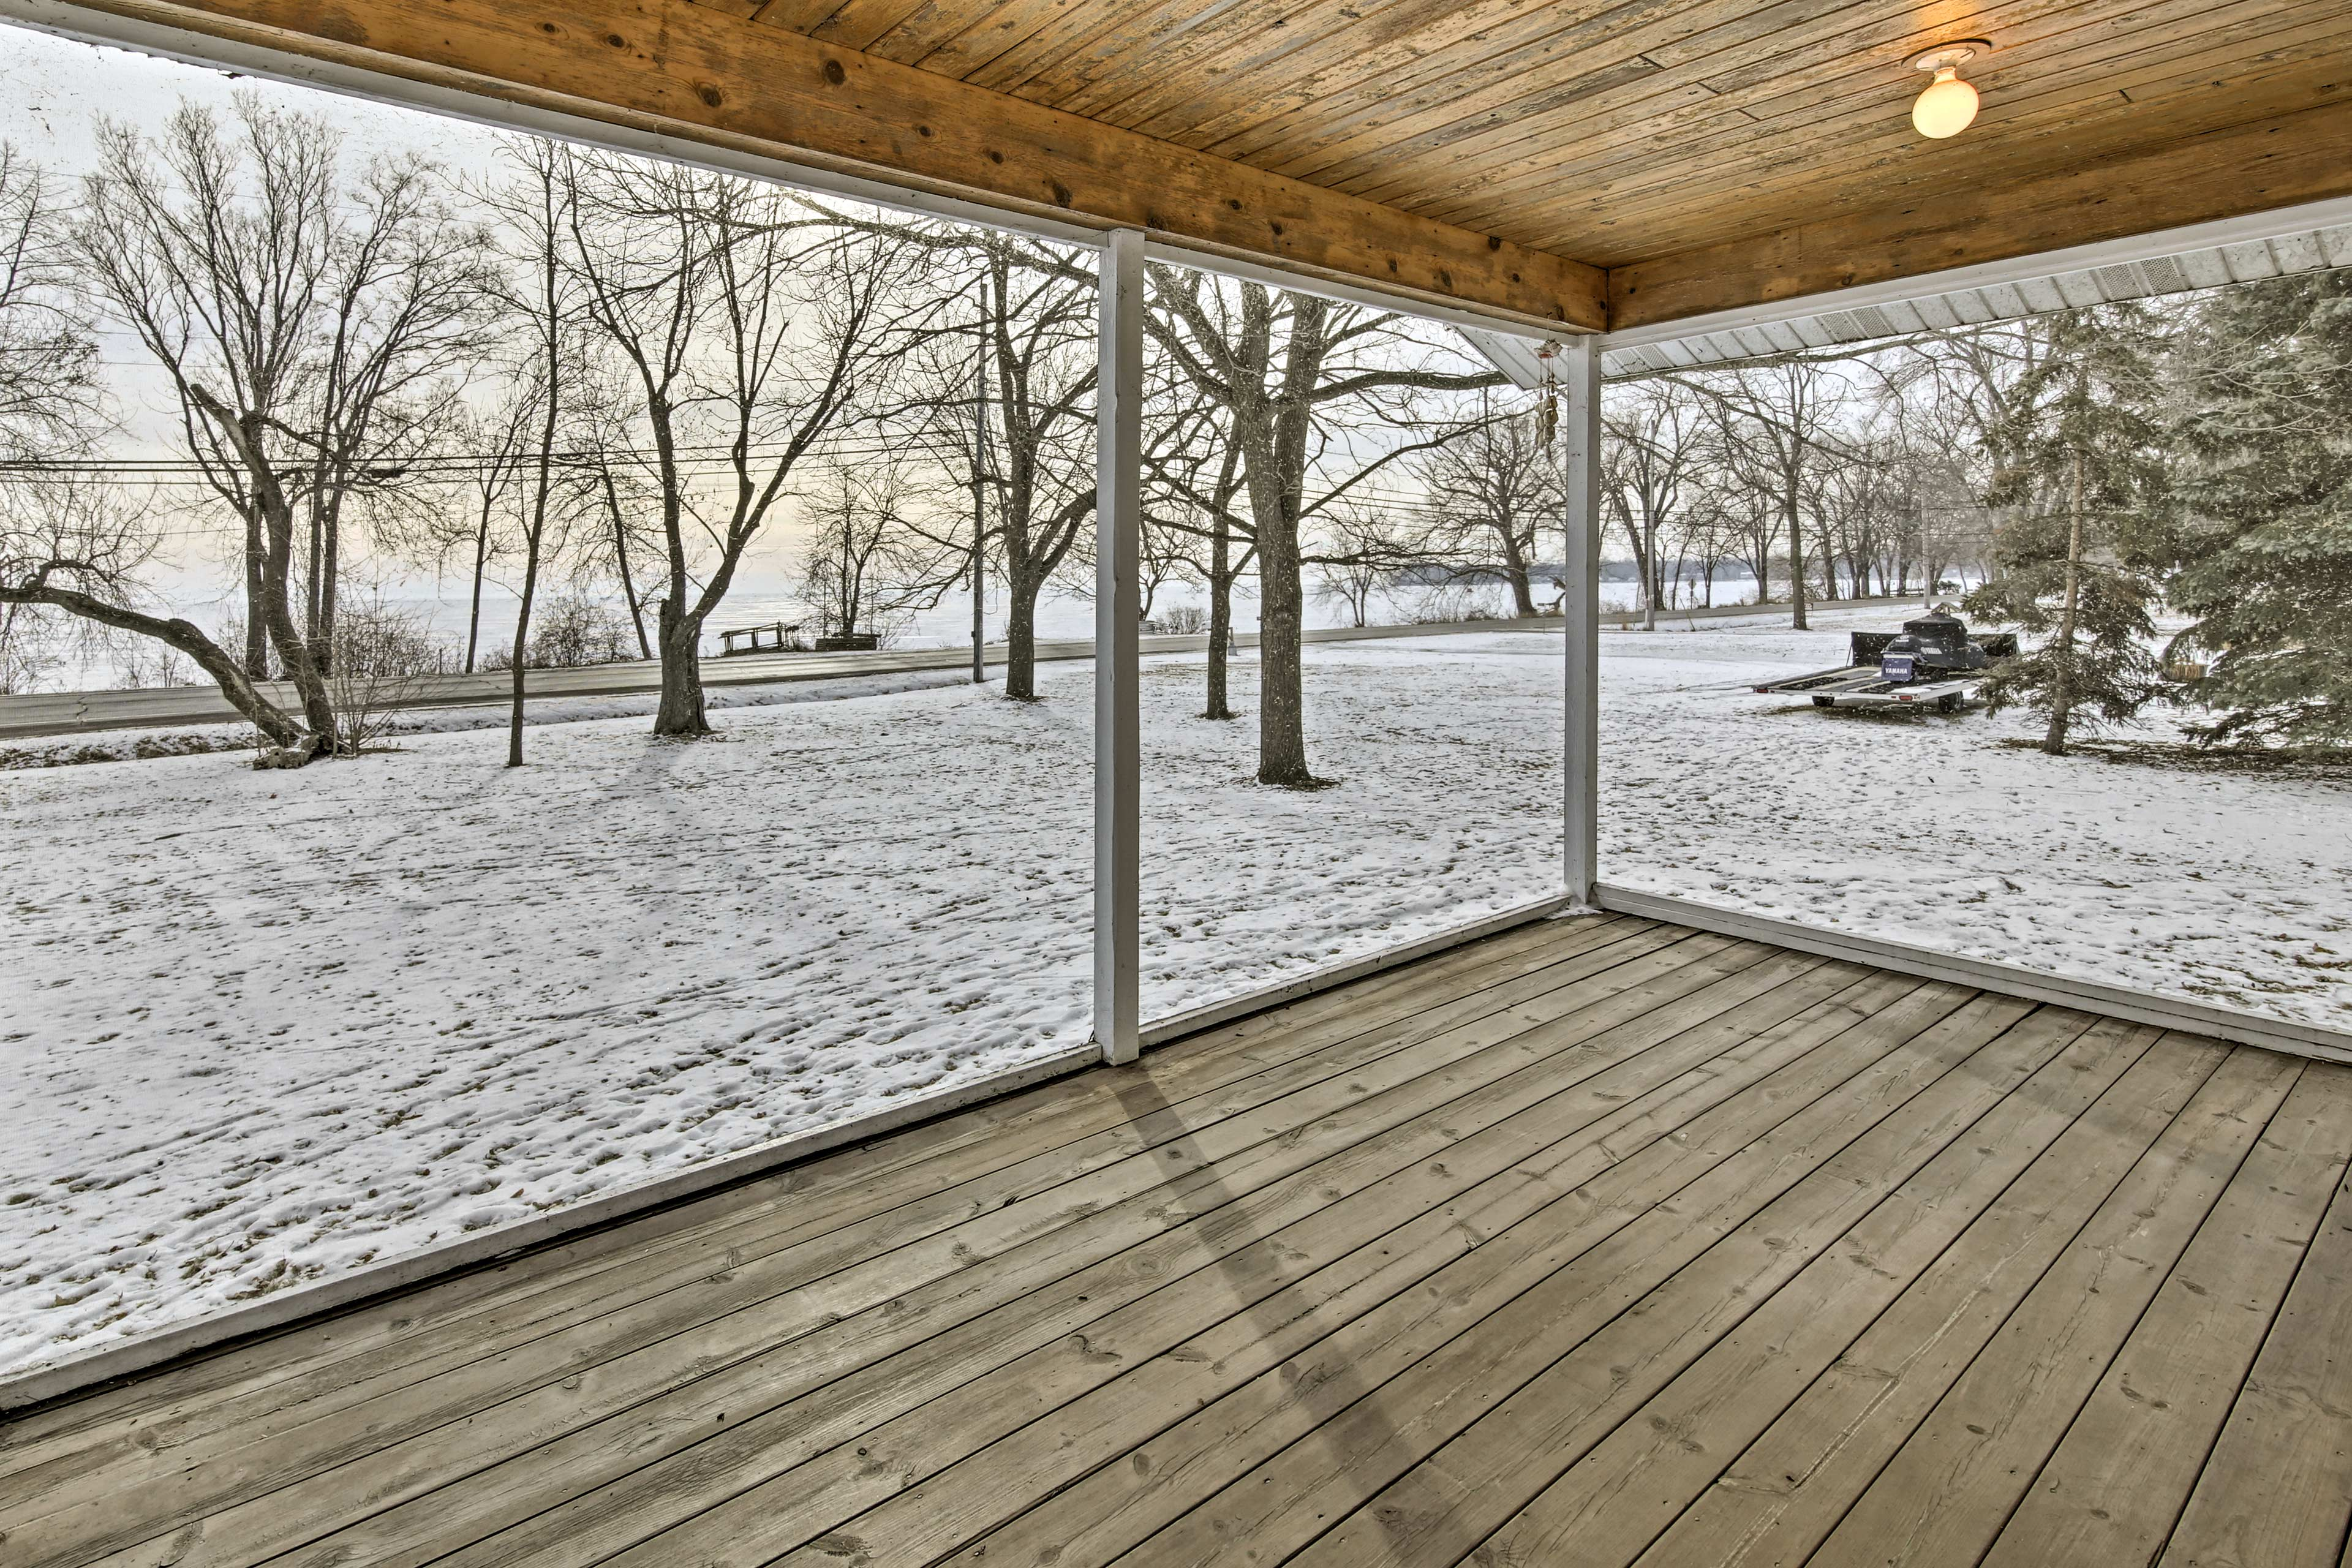 Sitting on 1 acre of  land, this property will treat you to peace and privacy.